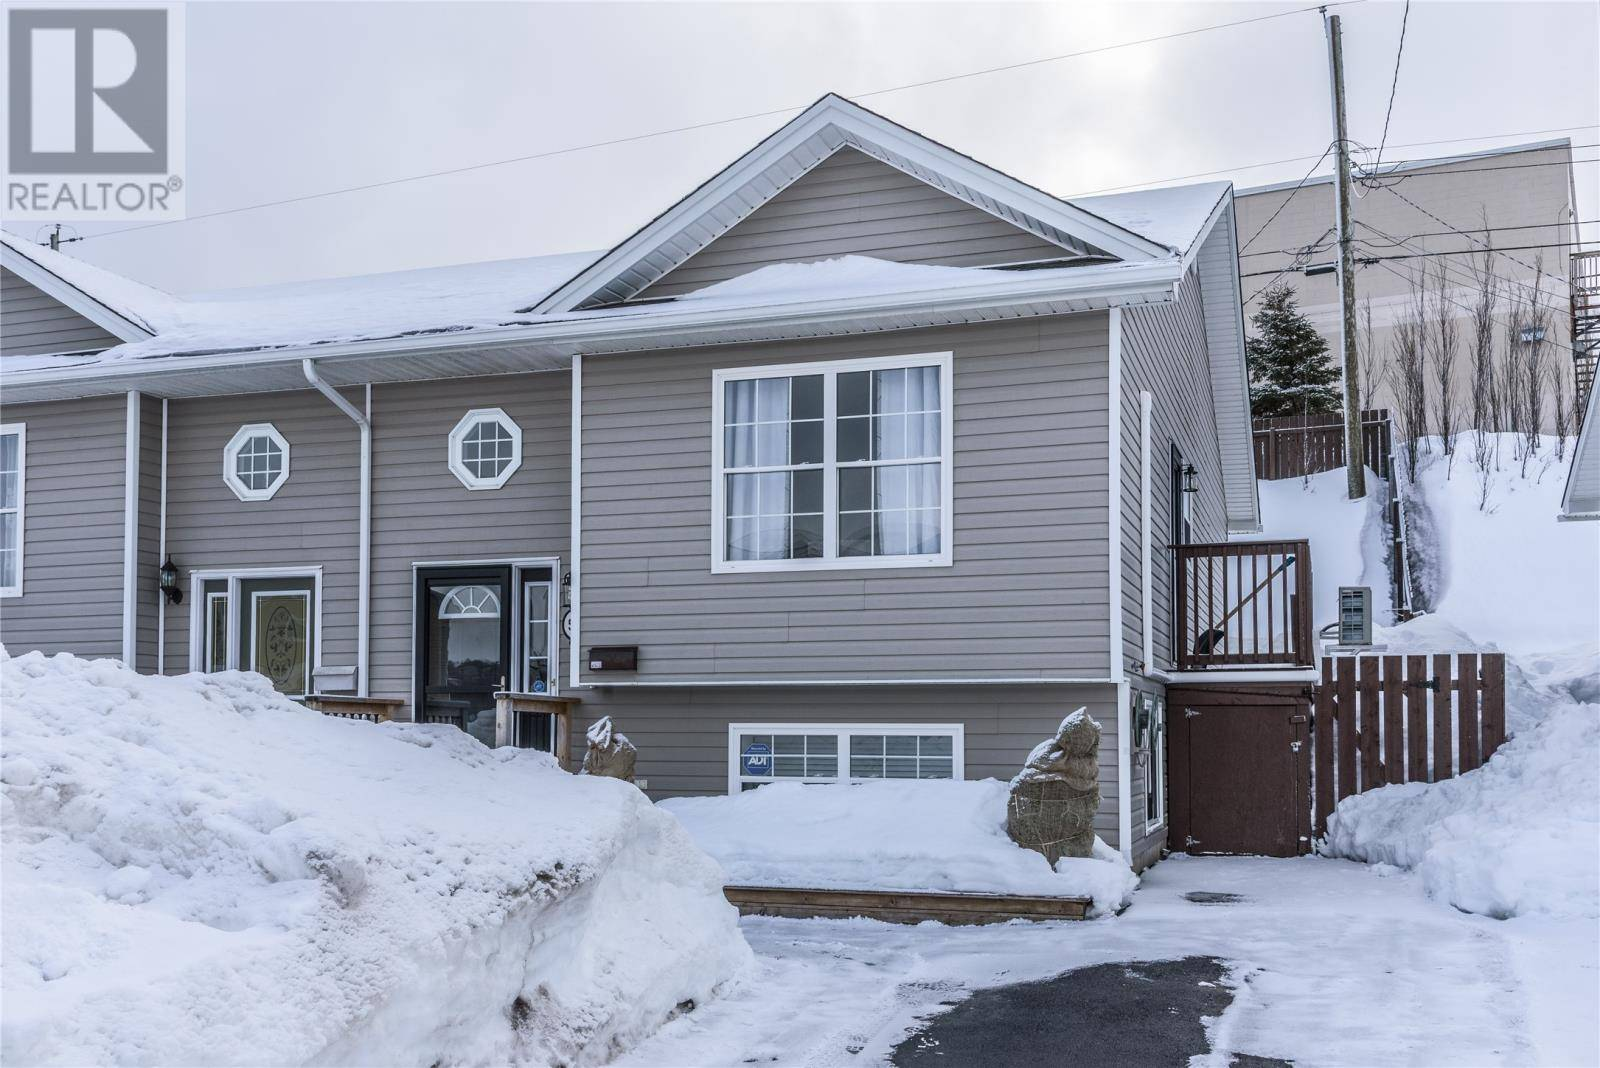 House for sale at 53 Edison Pl St. John's Newfoundland - MLS: 1210074